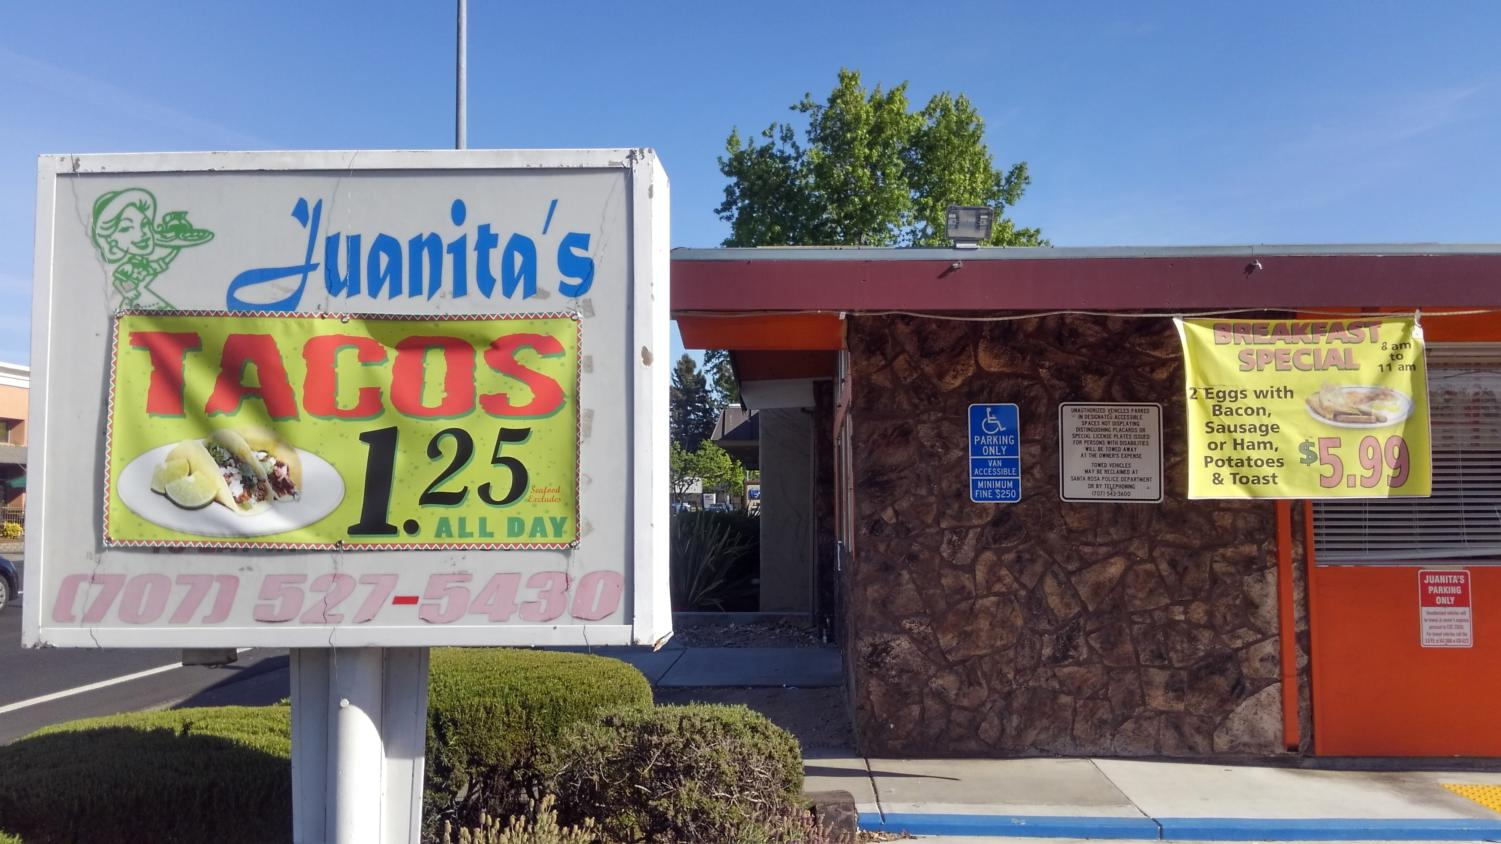 Juanita's offers killer salsas and delicious budget tacos with a location easily accessed by SRJC students.